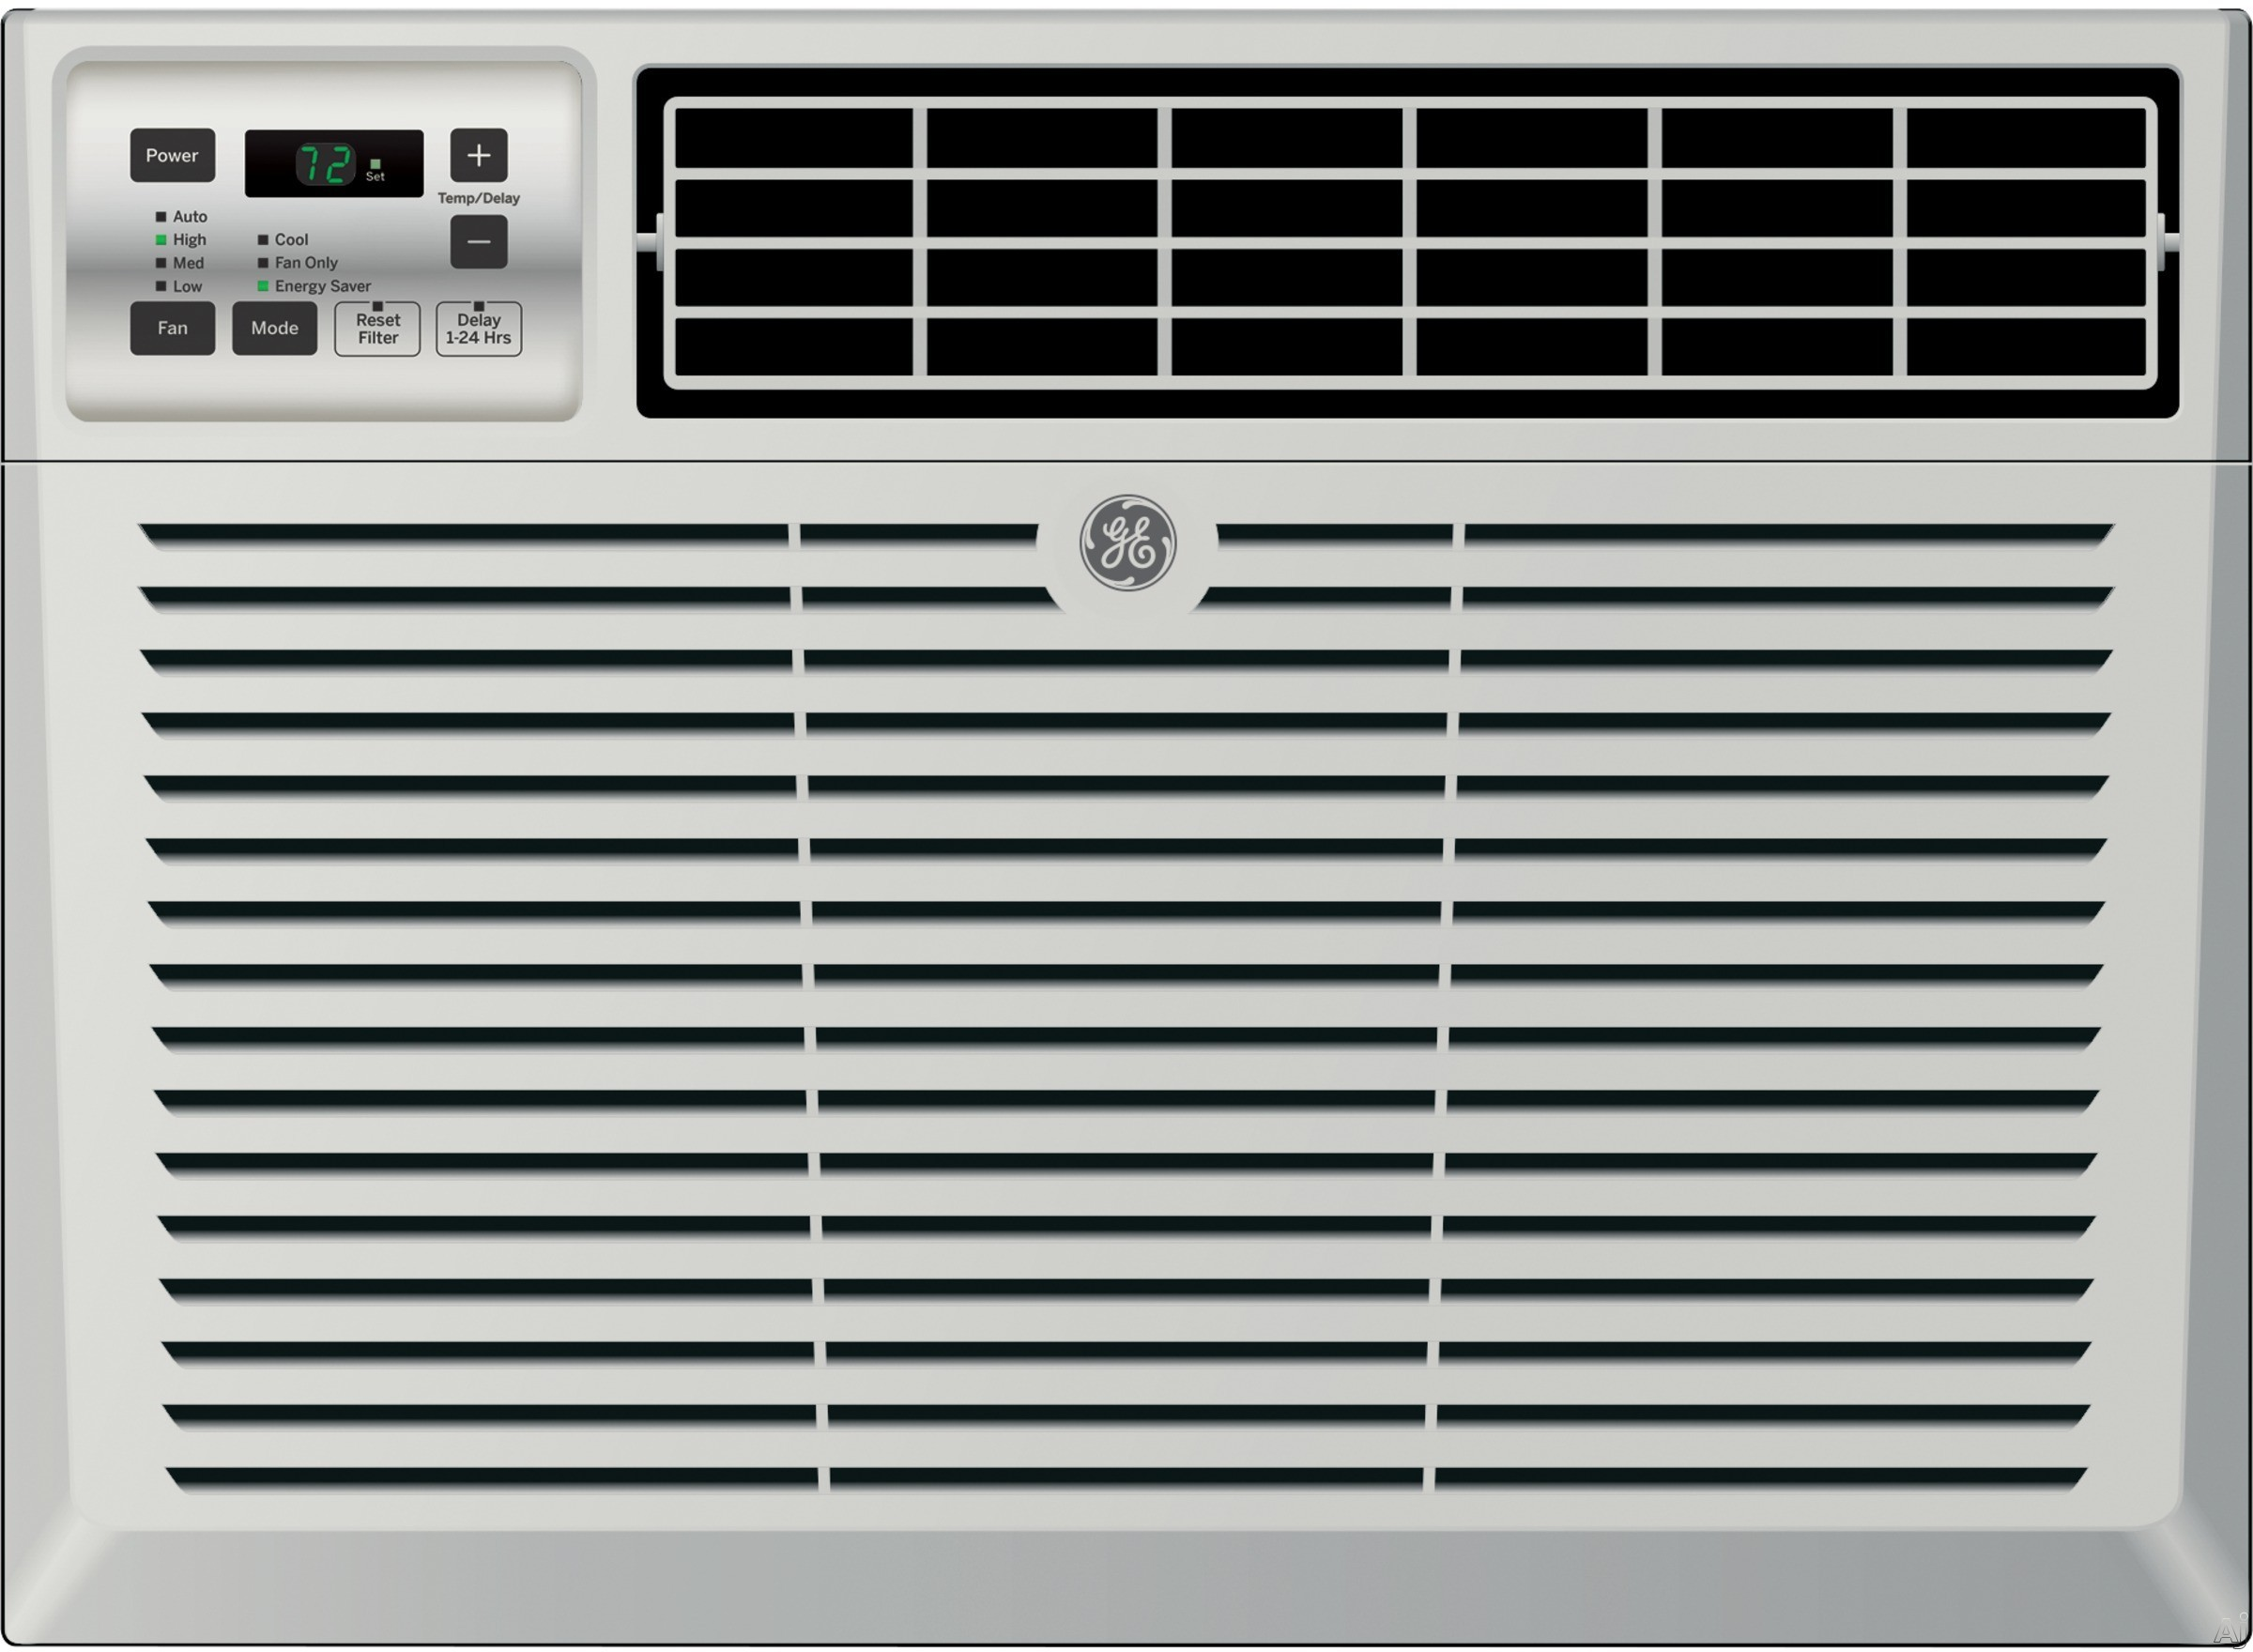 GE AED10AV 10 000 BTU Room Air Conditioner with 230 CFM 122 EER 3 Pts Hr Dehumidification 3 Fan Speeds WiFi Connect Electronic Digital Thermostat with Remote Deluxe Quiet EZ Mount Window Kit and ENERGY STAR Qualified